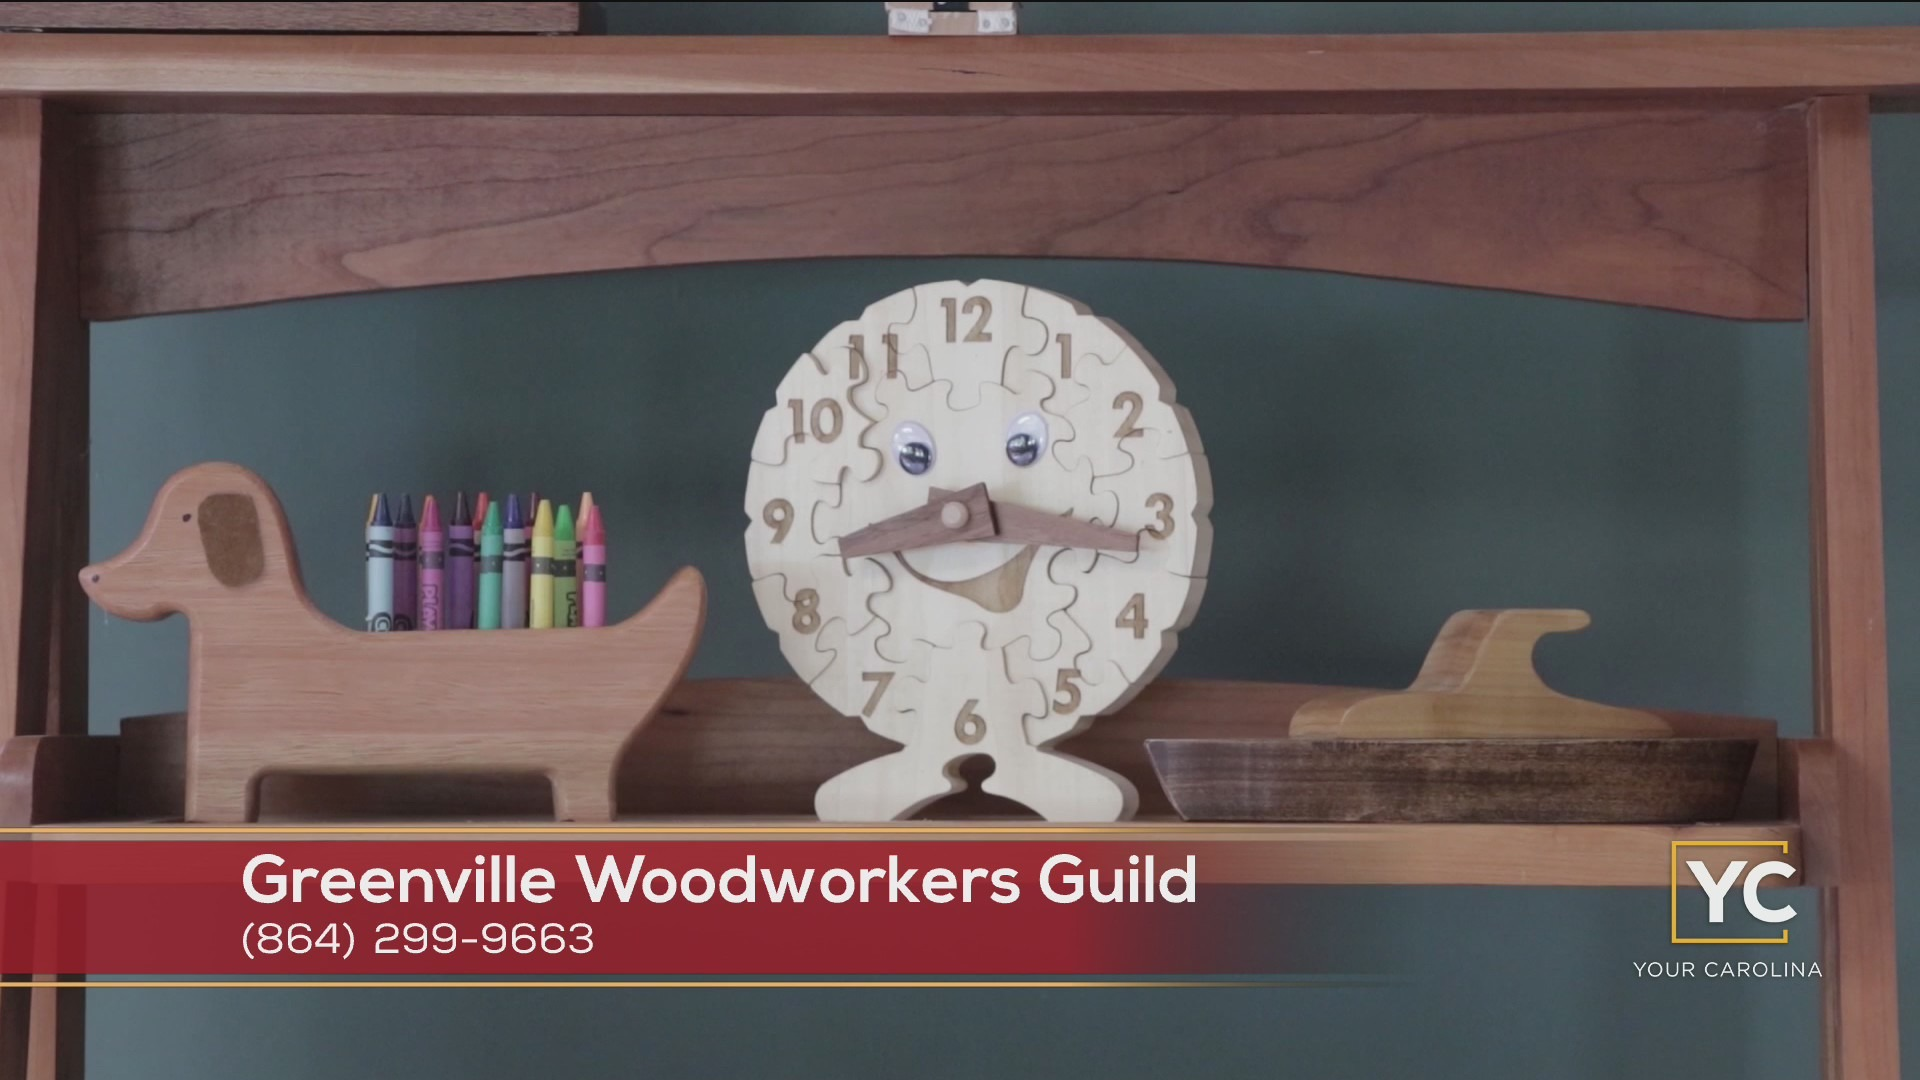 Greenville Woodworkers Guild celebrates 40 years of toy making and more